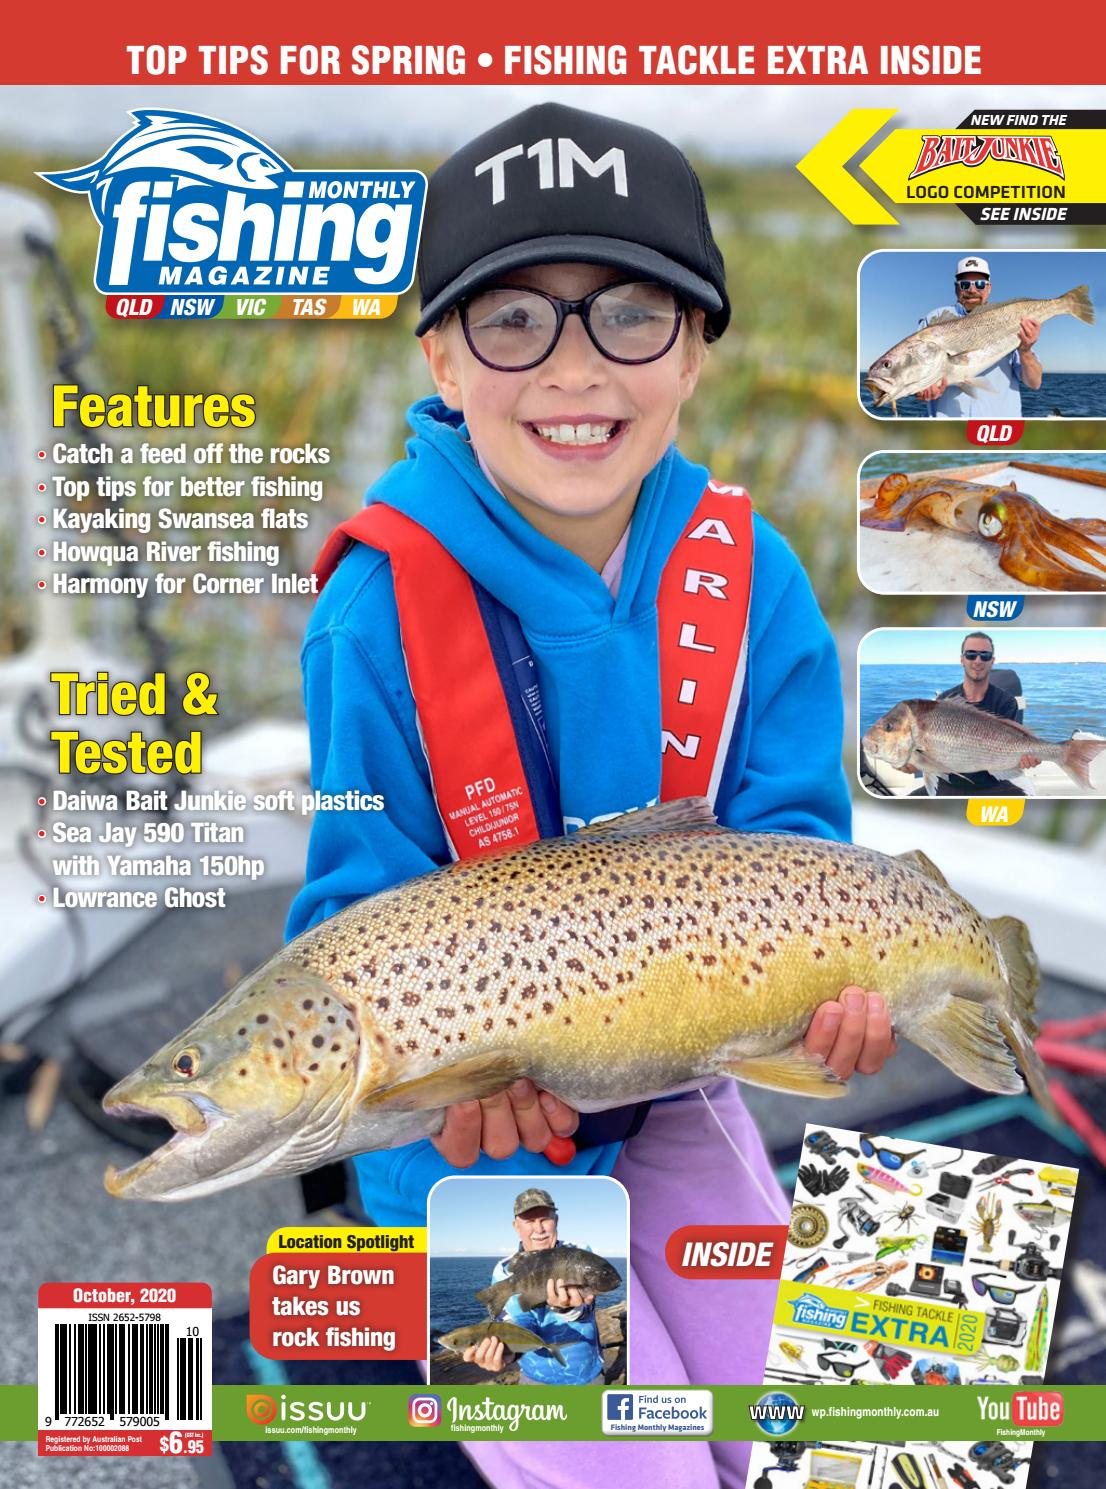 fishing monthly magazine october 2020 by fishing monthly issuu fishing monthly magazine october 2020